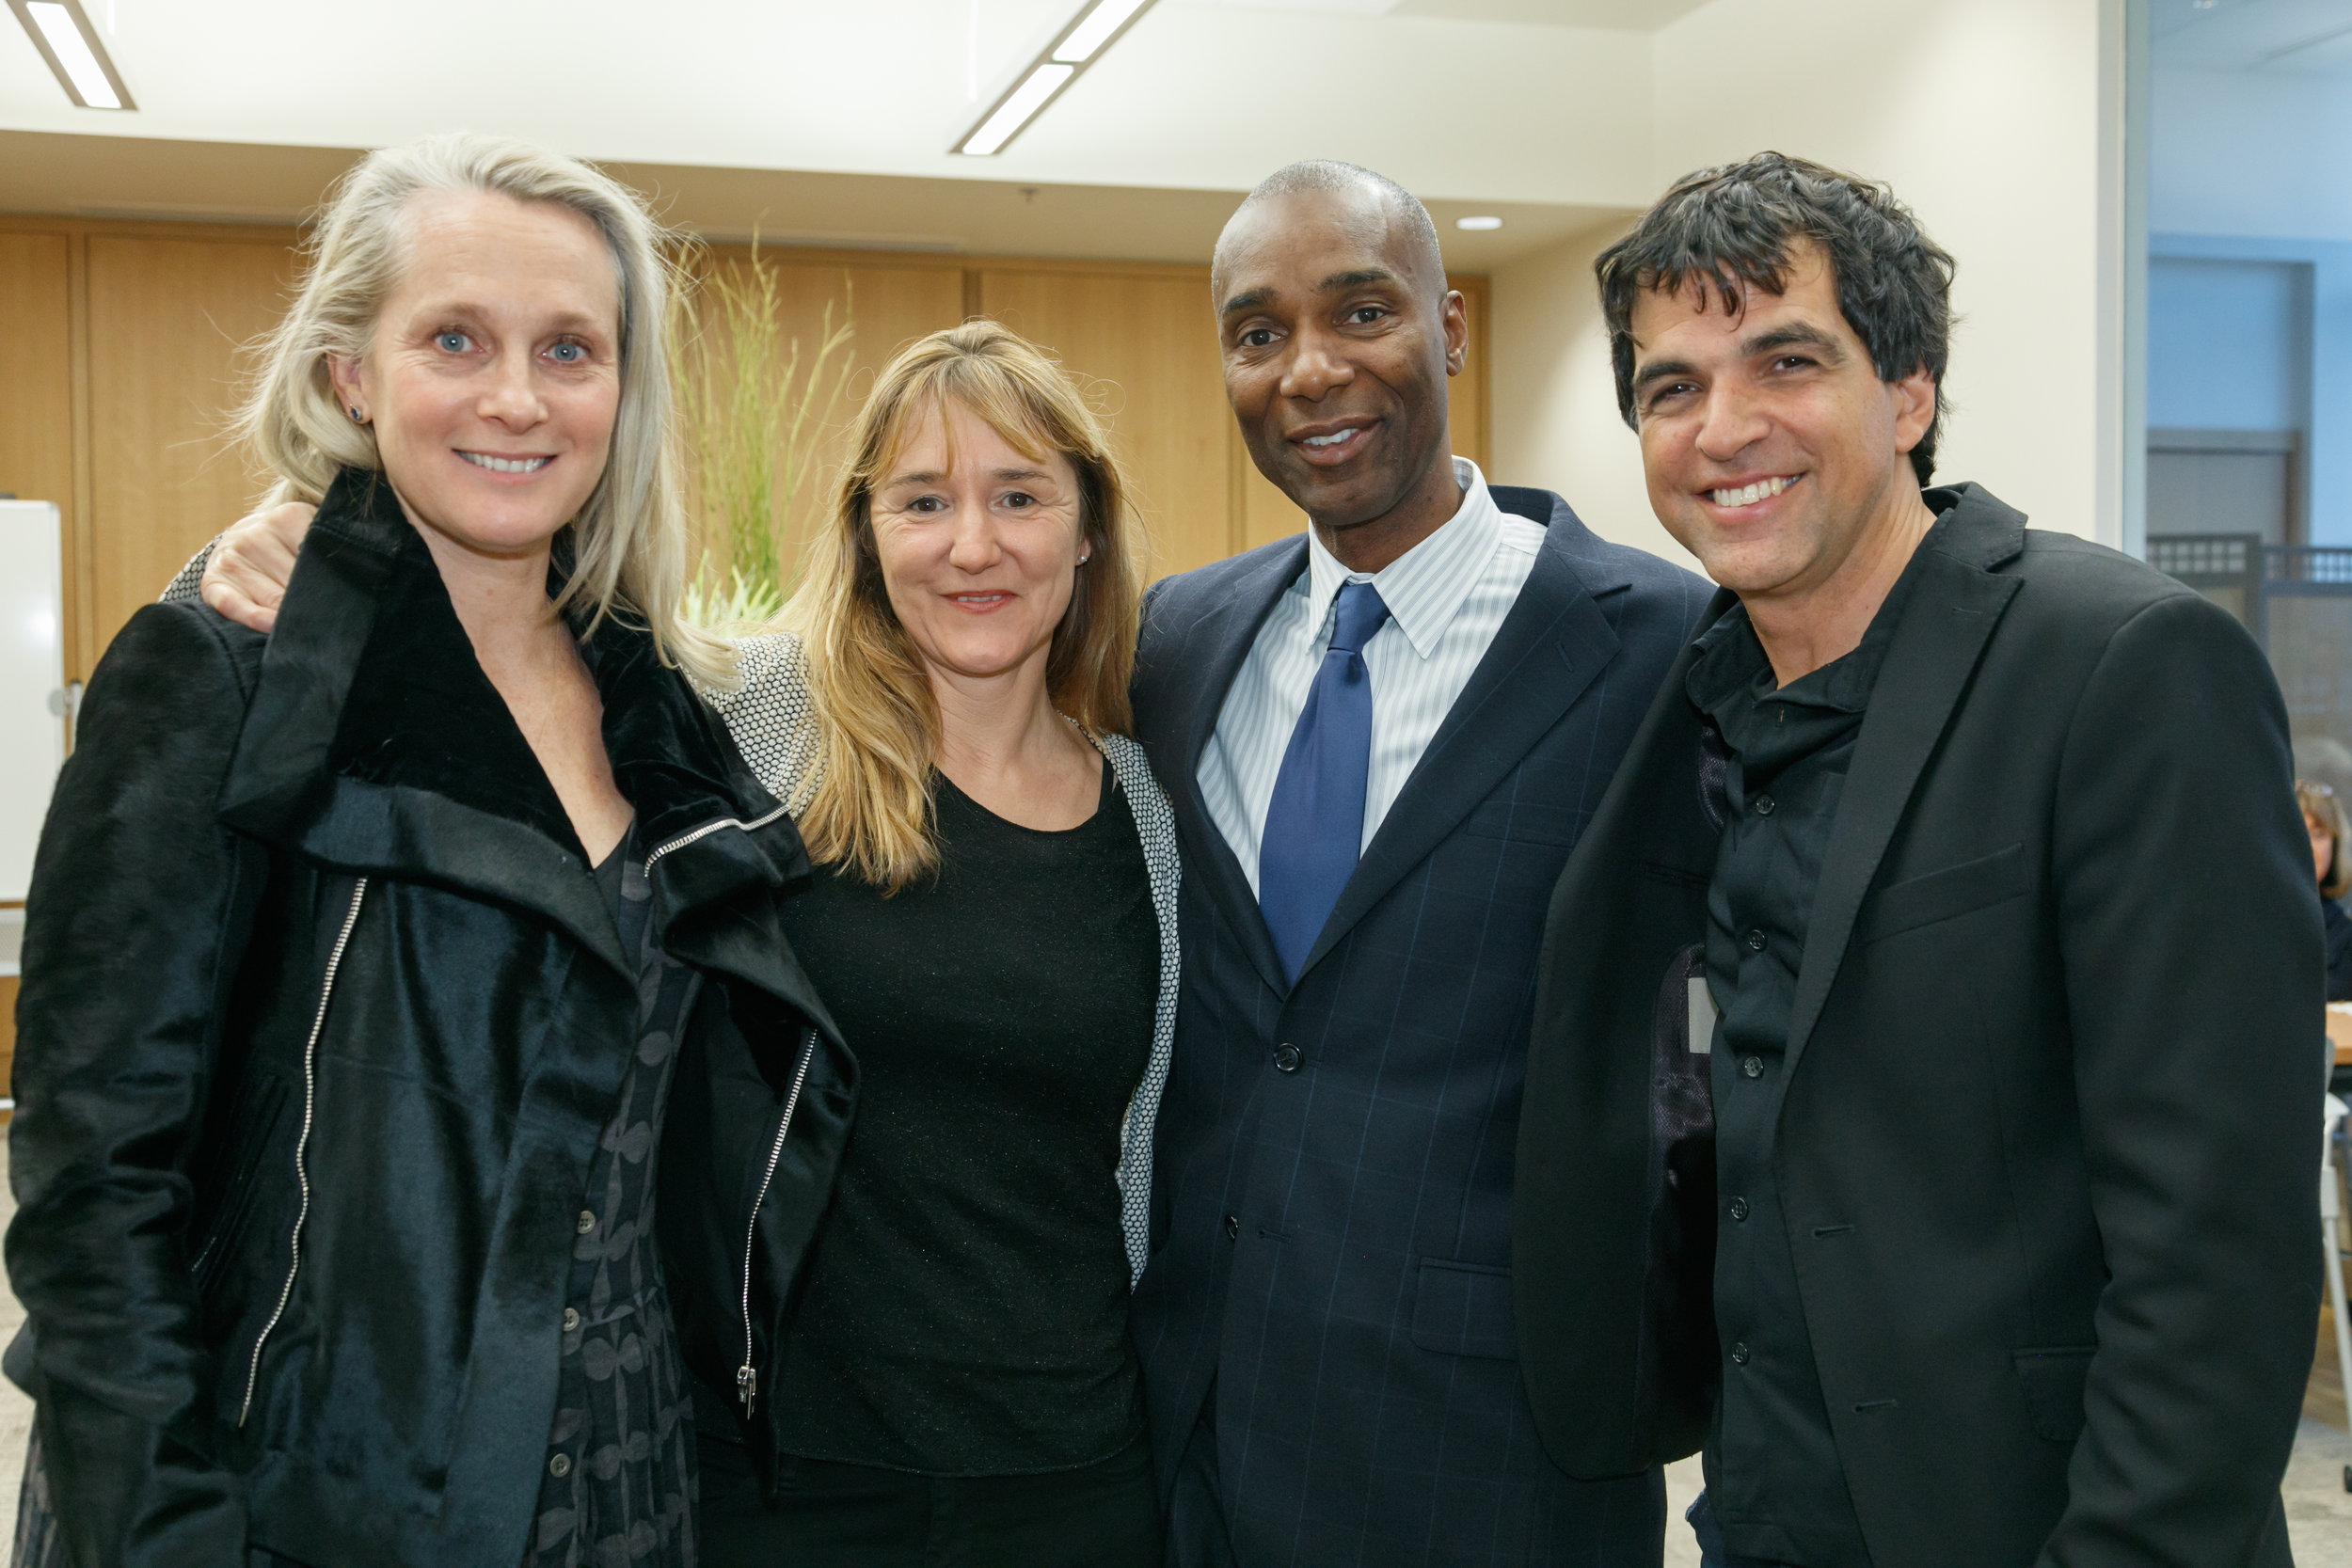 Patrick Chappatte and Anne-Frederique Widmann with Special Guests- Ndume Olatushani and Piper Kerman, A.J. Zanyk - Photo Credit (Columbus, OH)